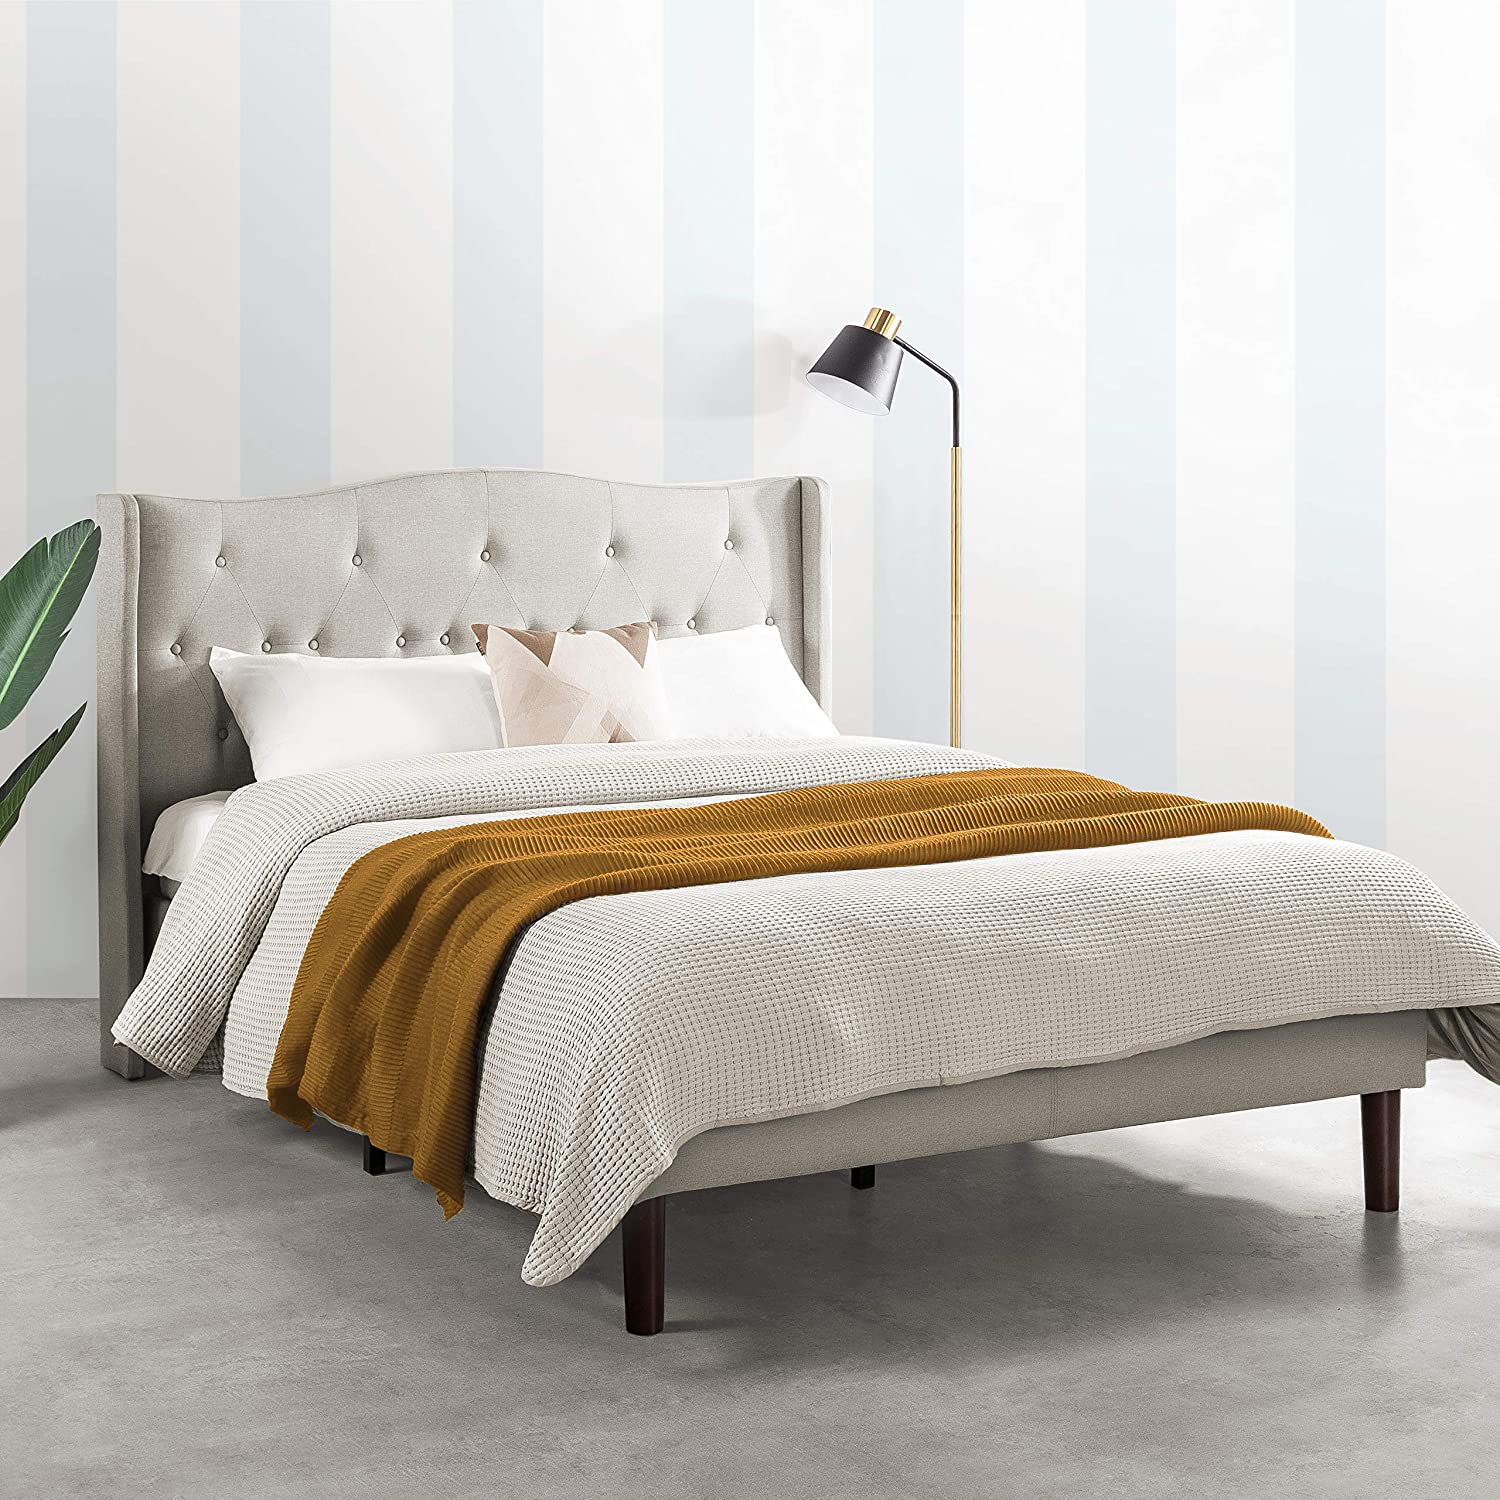 Mellow AMABEL Upholstered Platform Bed, Modern Tufted Wingback Headboard, Real Wooden Slats and Legs, Light Grey, Queen